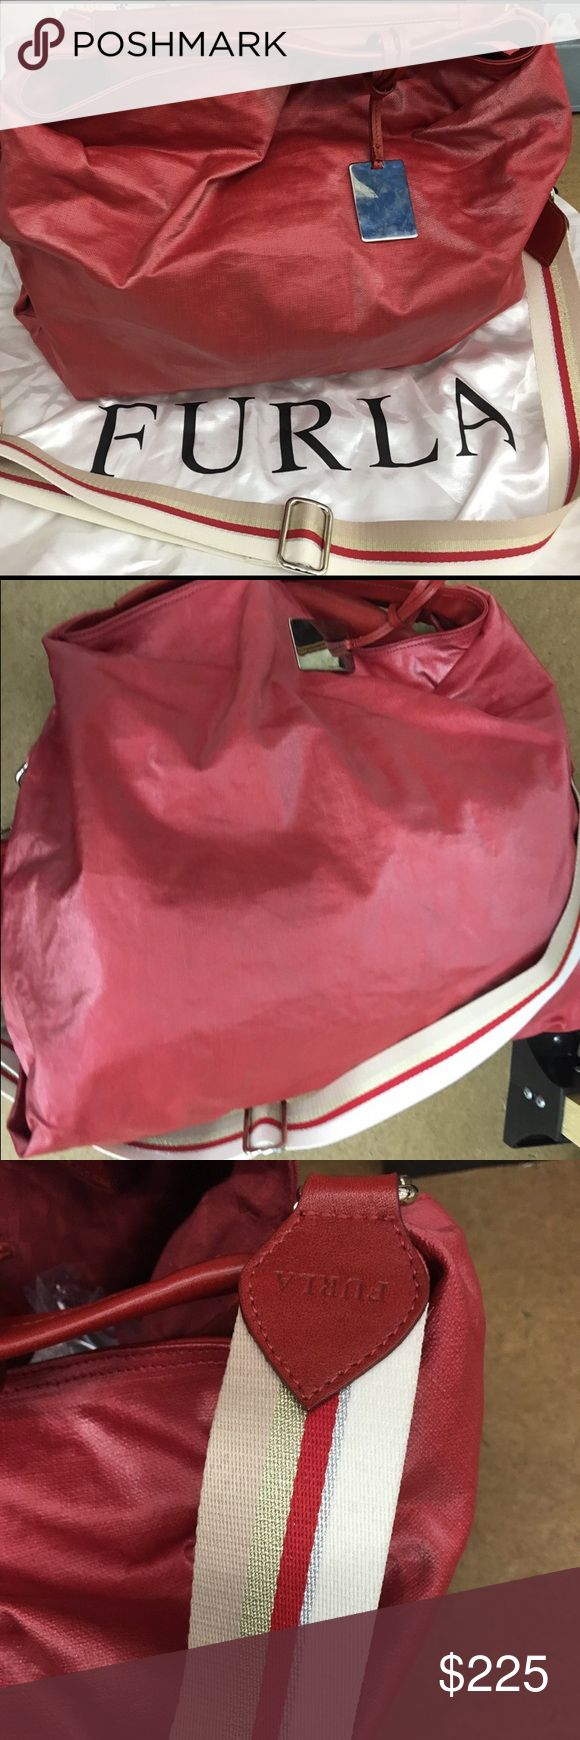 Furla extra large tote bag (RED) Extra large bag. New without tags. Shiny coated fabric. Furla Bags Satchels